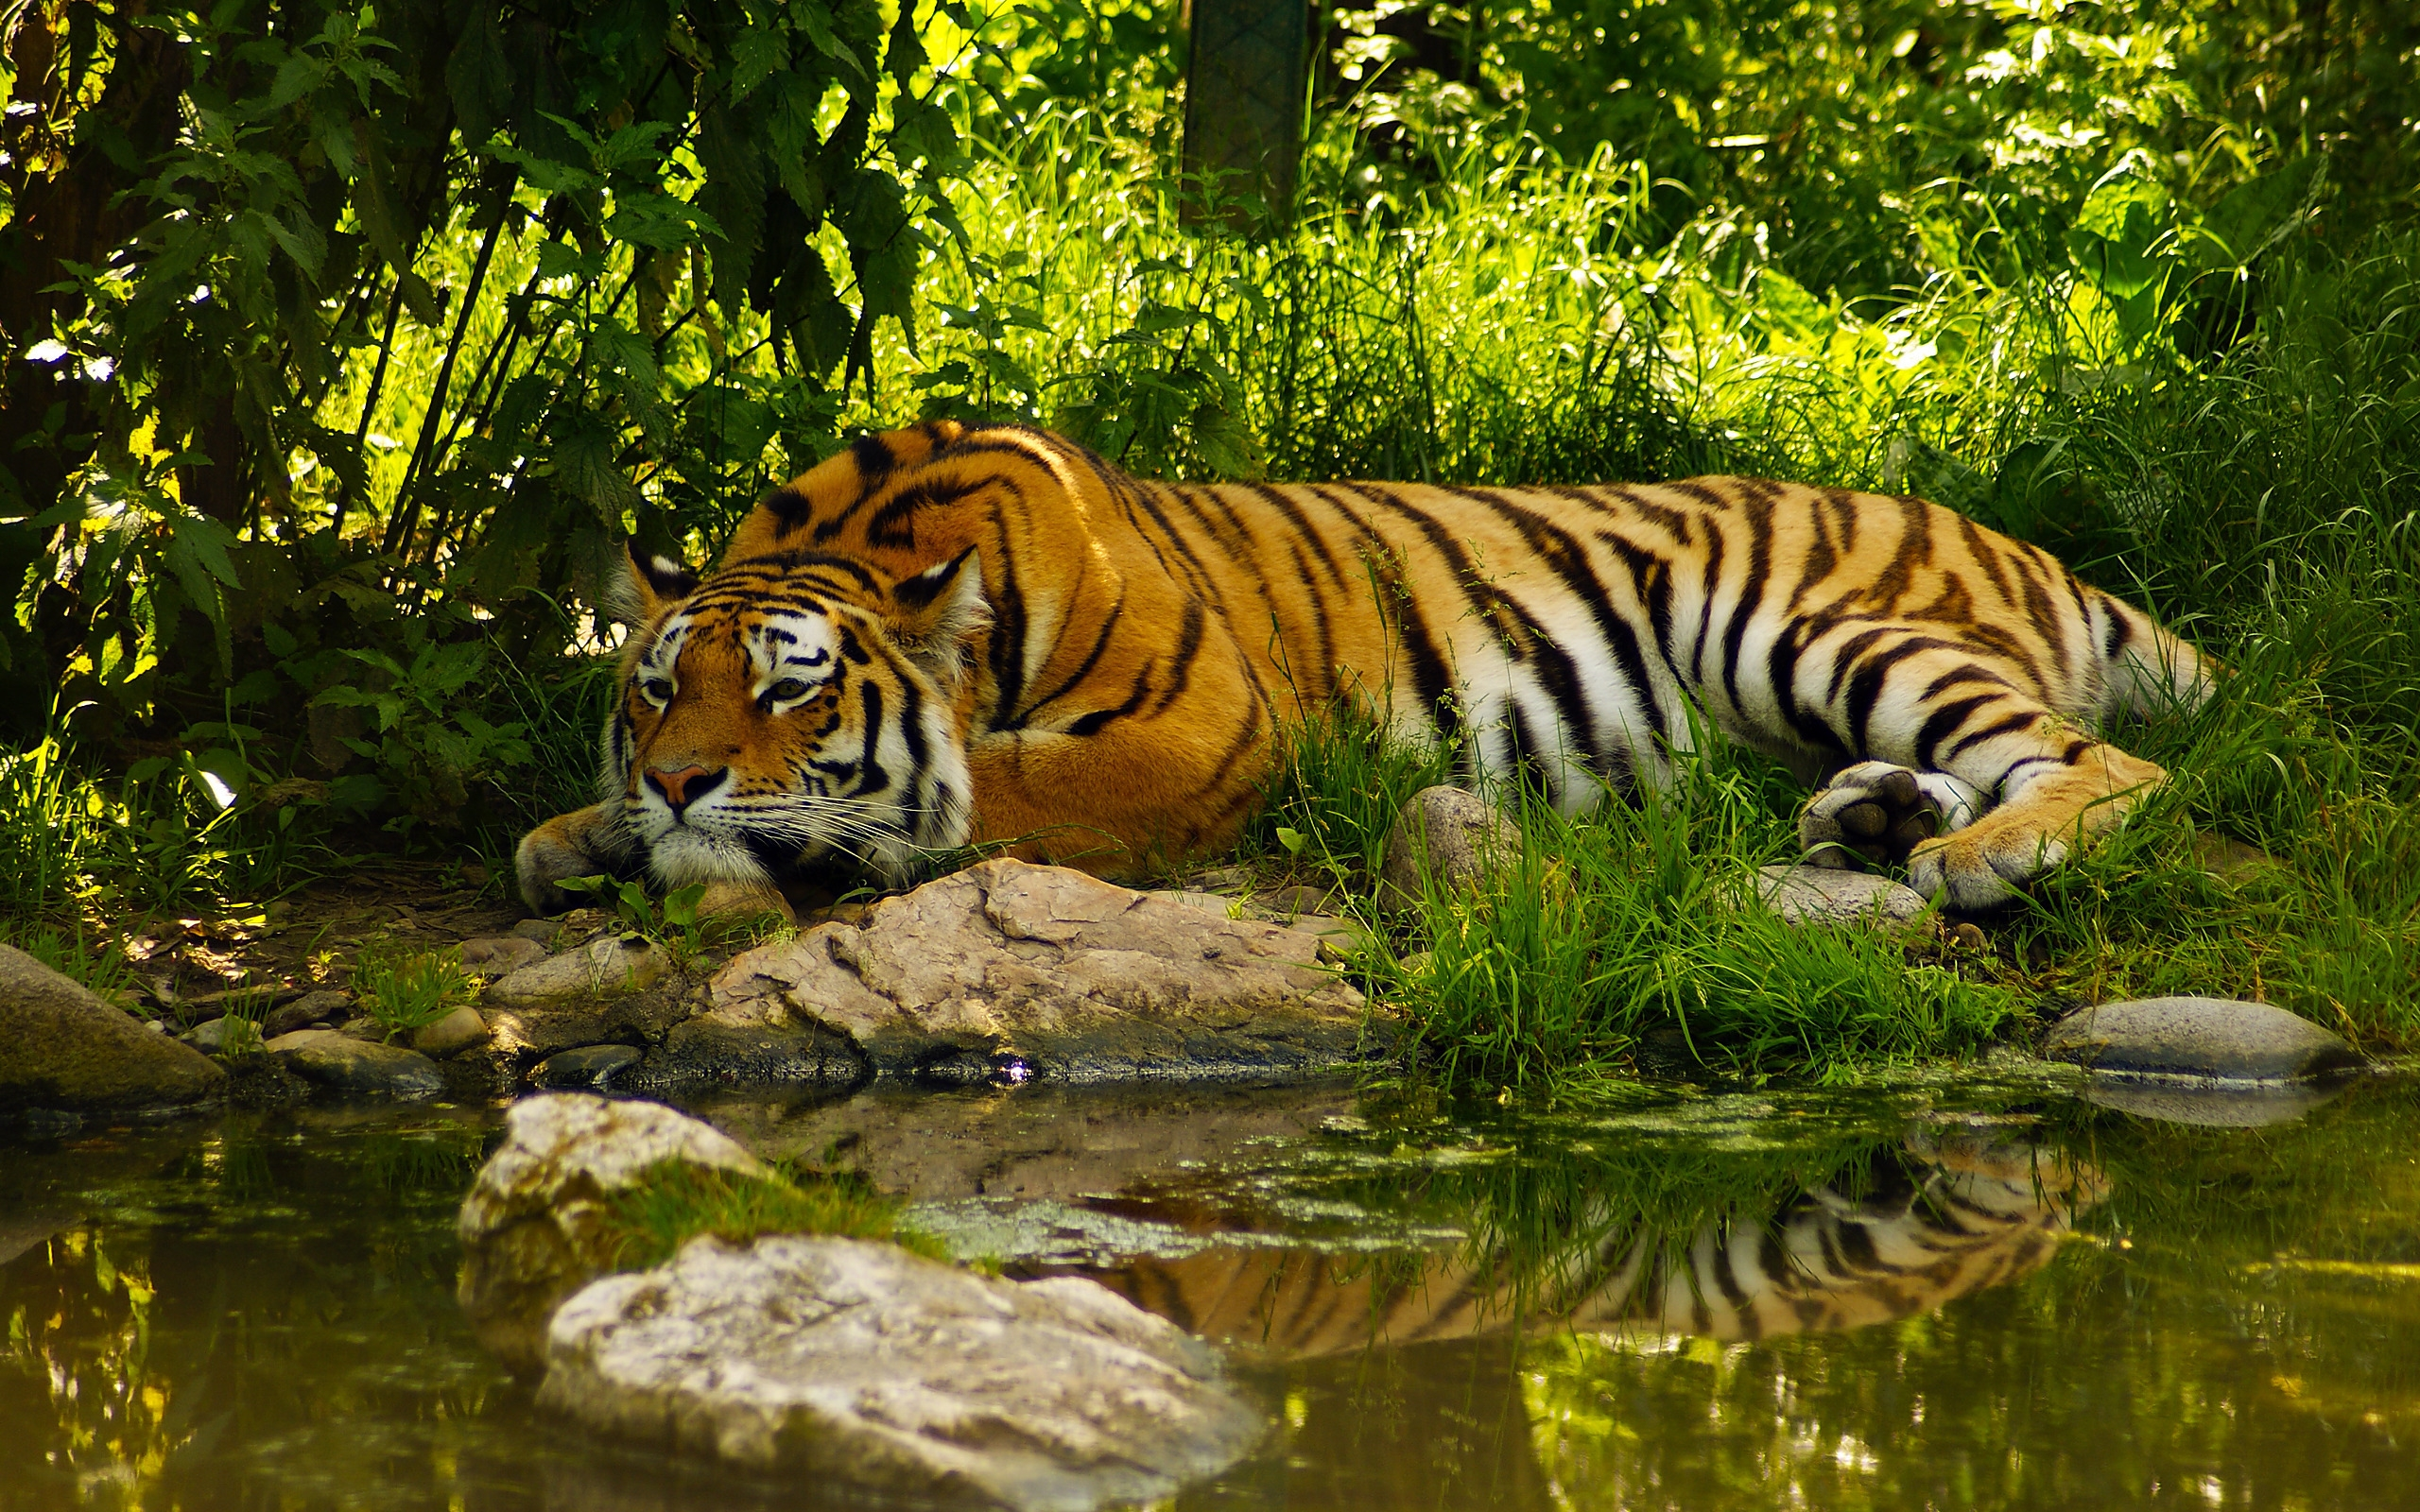 Animal Nature HD Wallpapers - WallpaperSafari